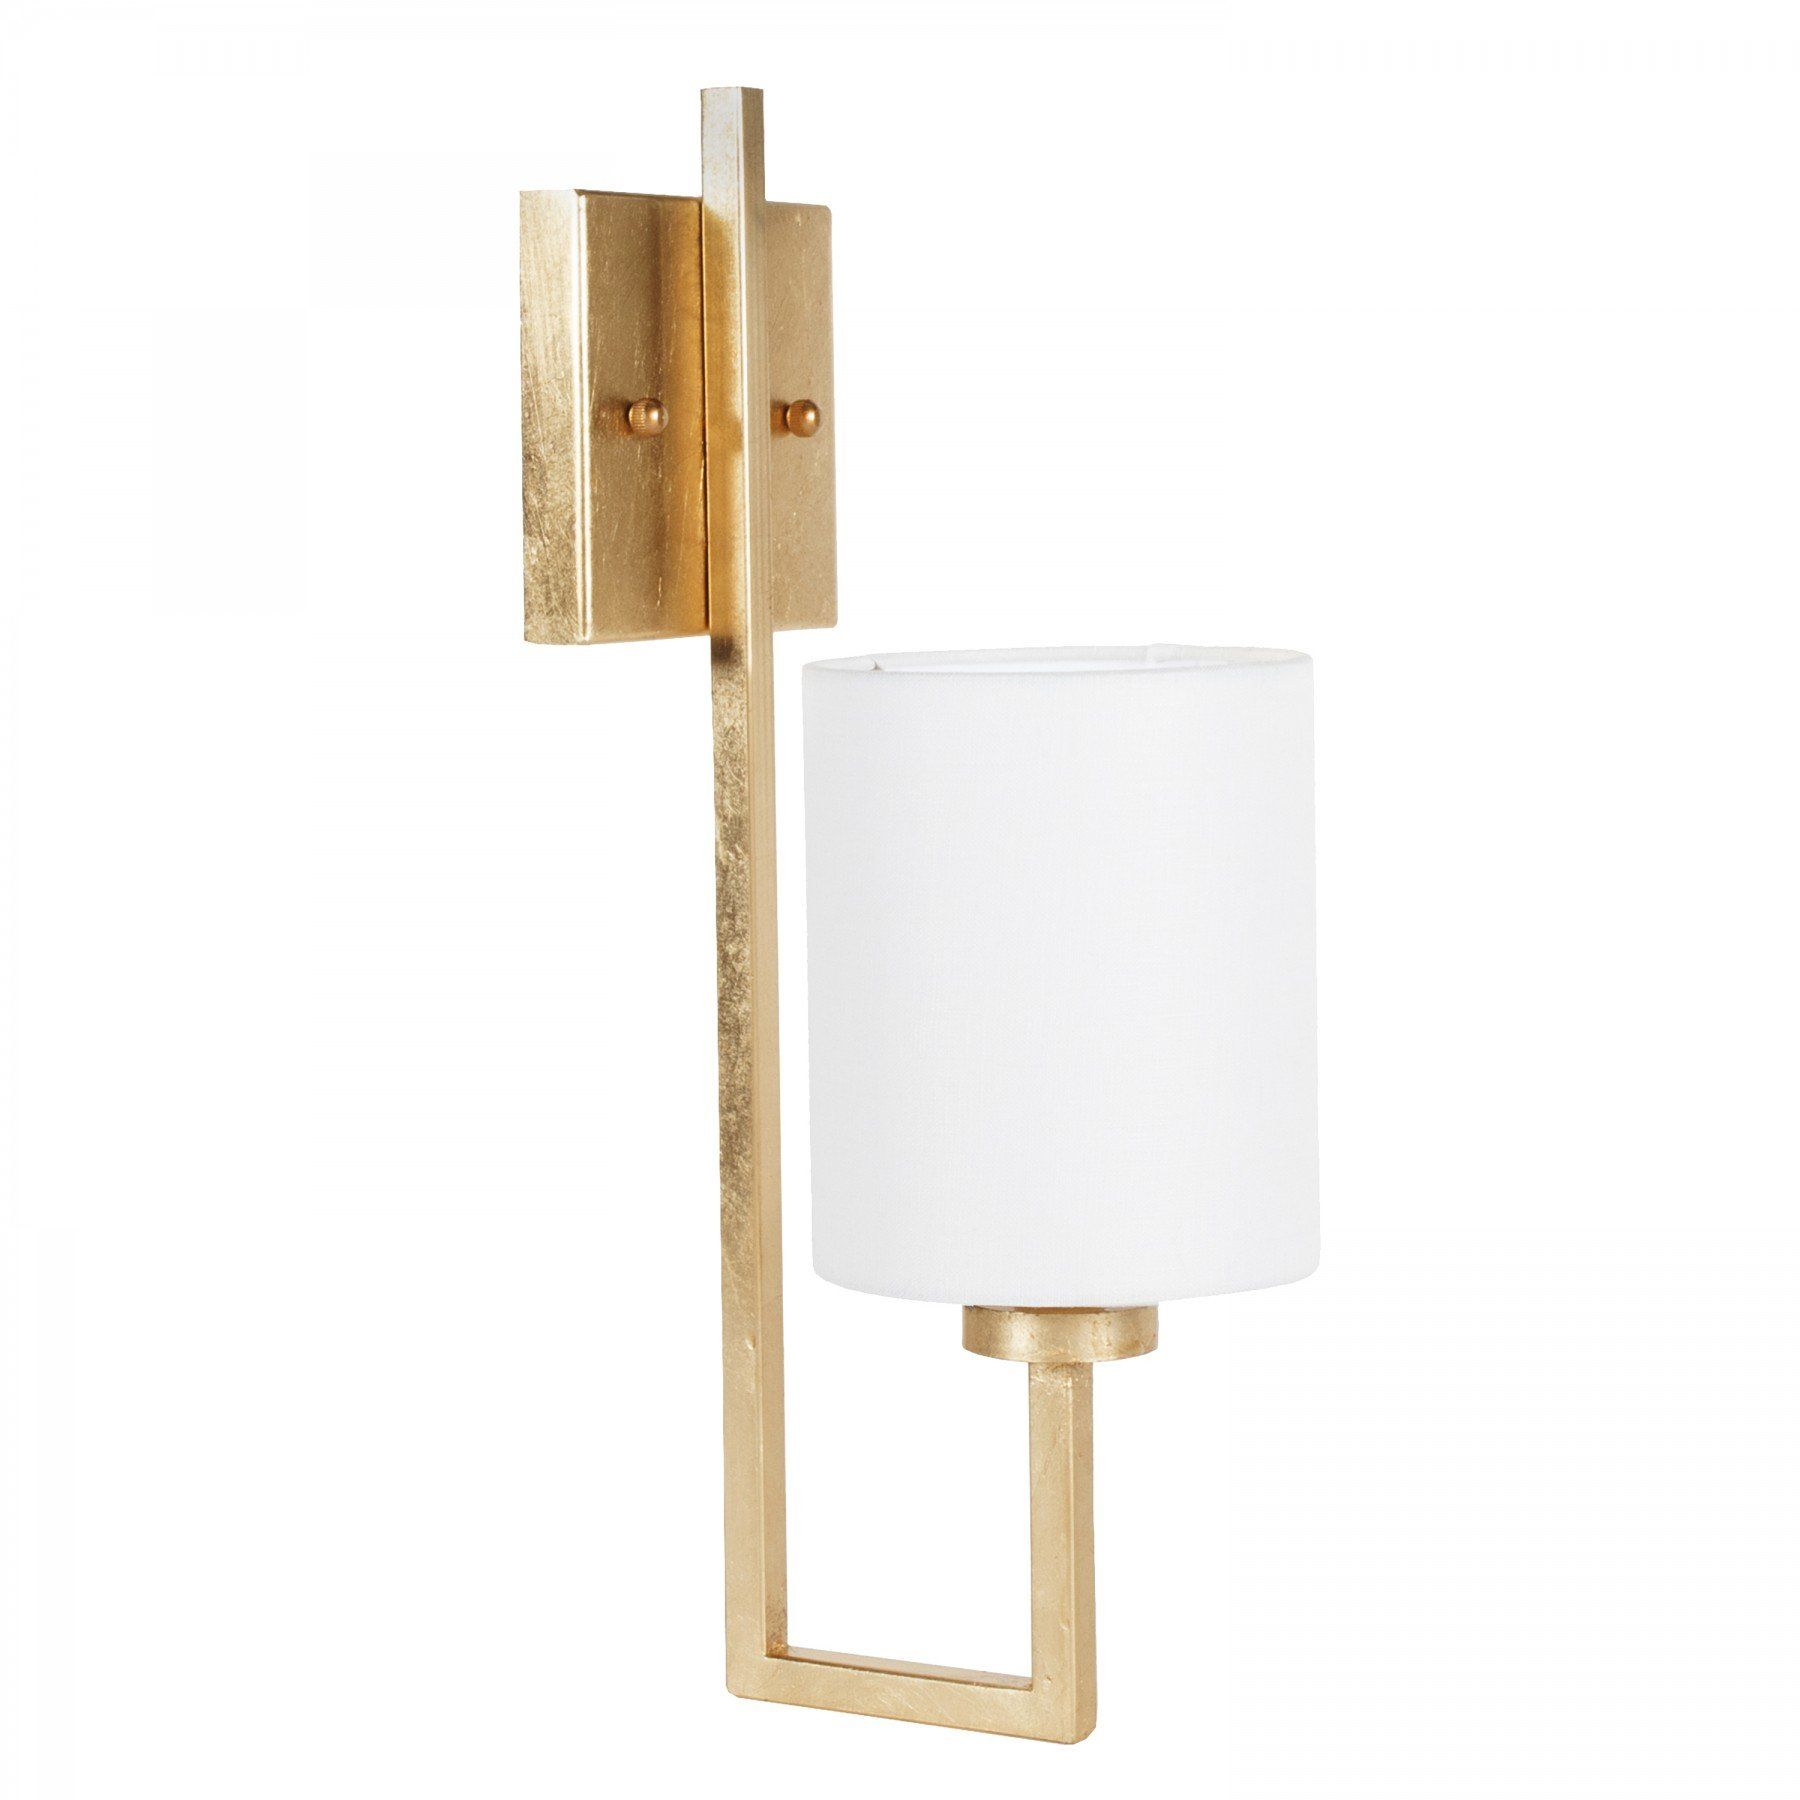 Beckham Gold Leaf Wall Sconce Wall Lamps Amp Sconces Lighting James Said Gold Wall Sconce Sconces Sconce Lighting